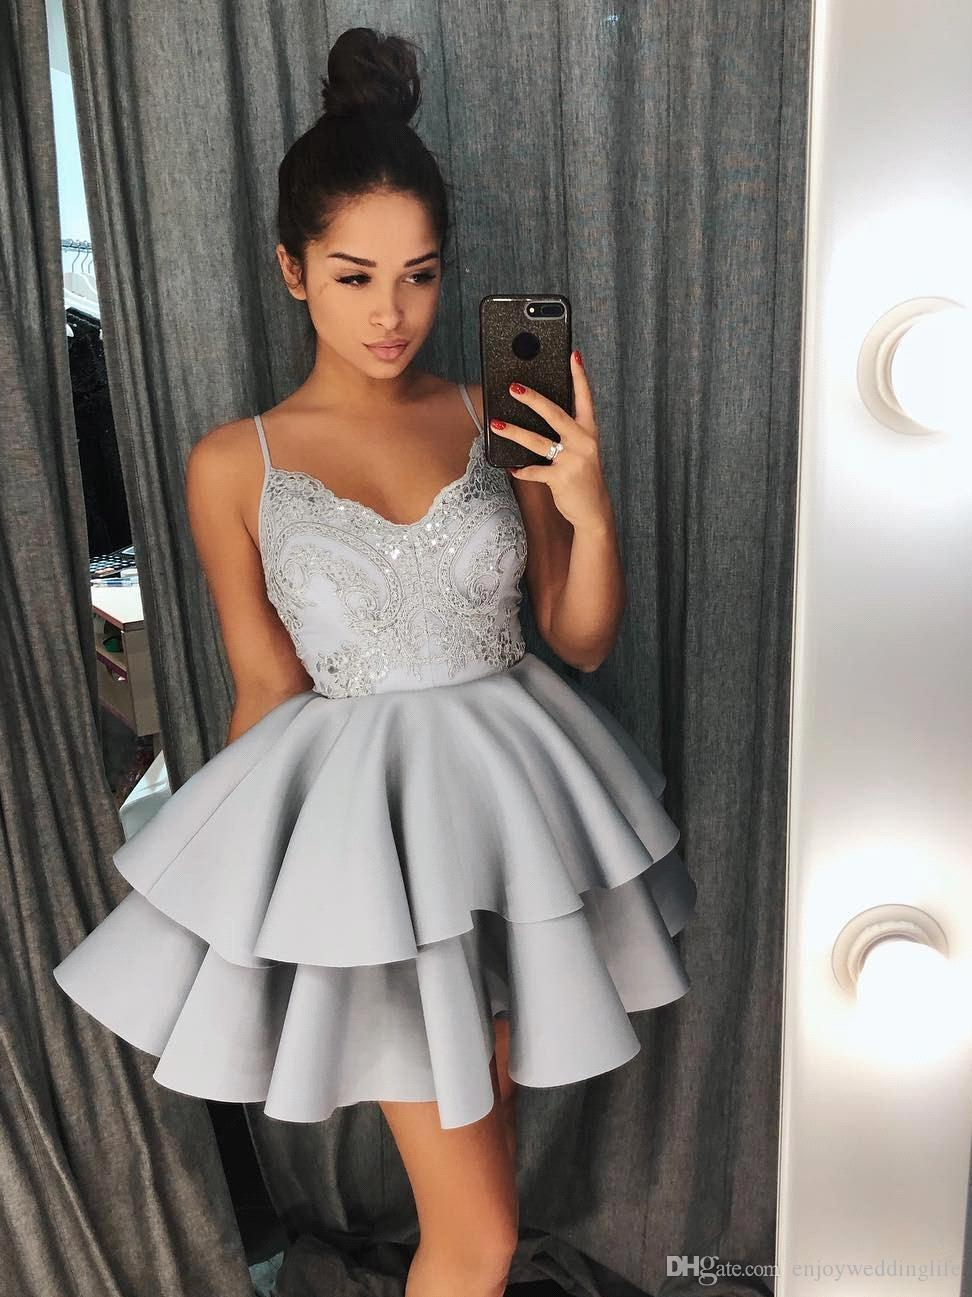 f7c1762826db 2018 Silver Spaghetti Straps Mini Short Homecoming Dresses Lace Sequins  Tiered Skirts Cocktail Party Wear Short Prom Gowns BA9038 Short Dresses For  Juniors ...